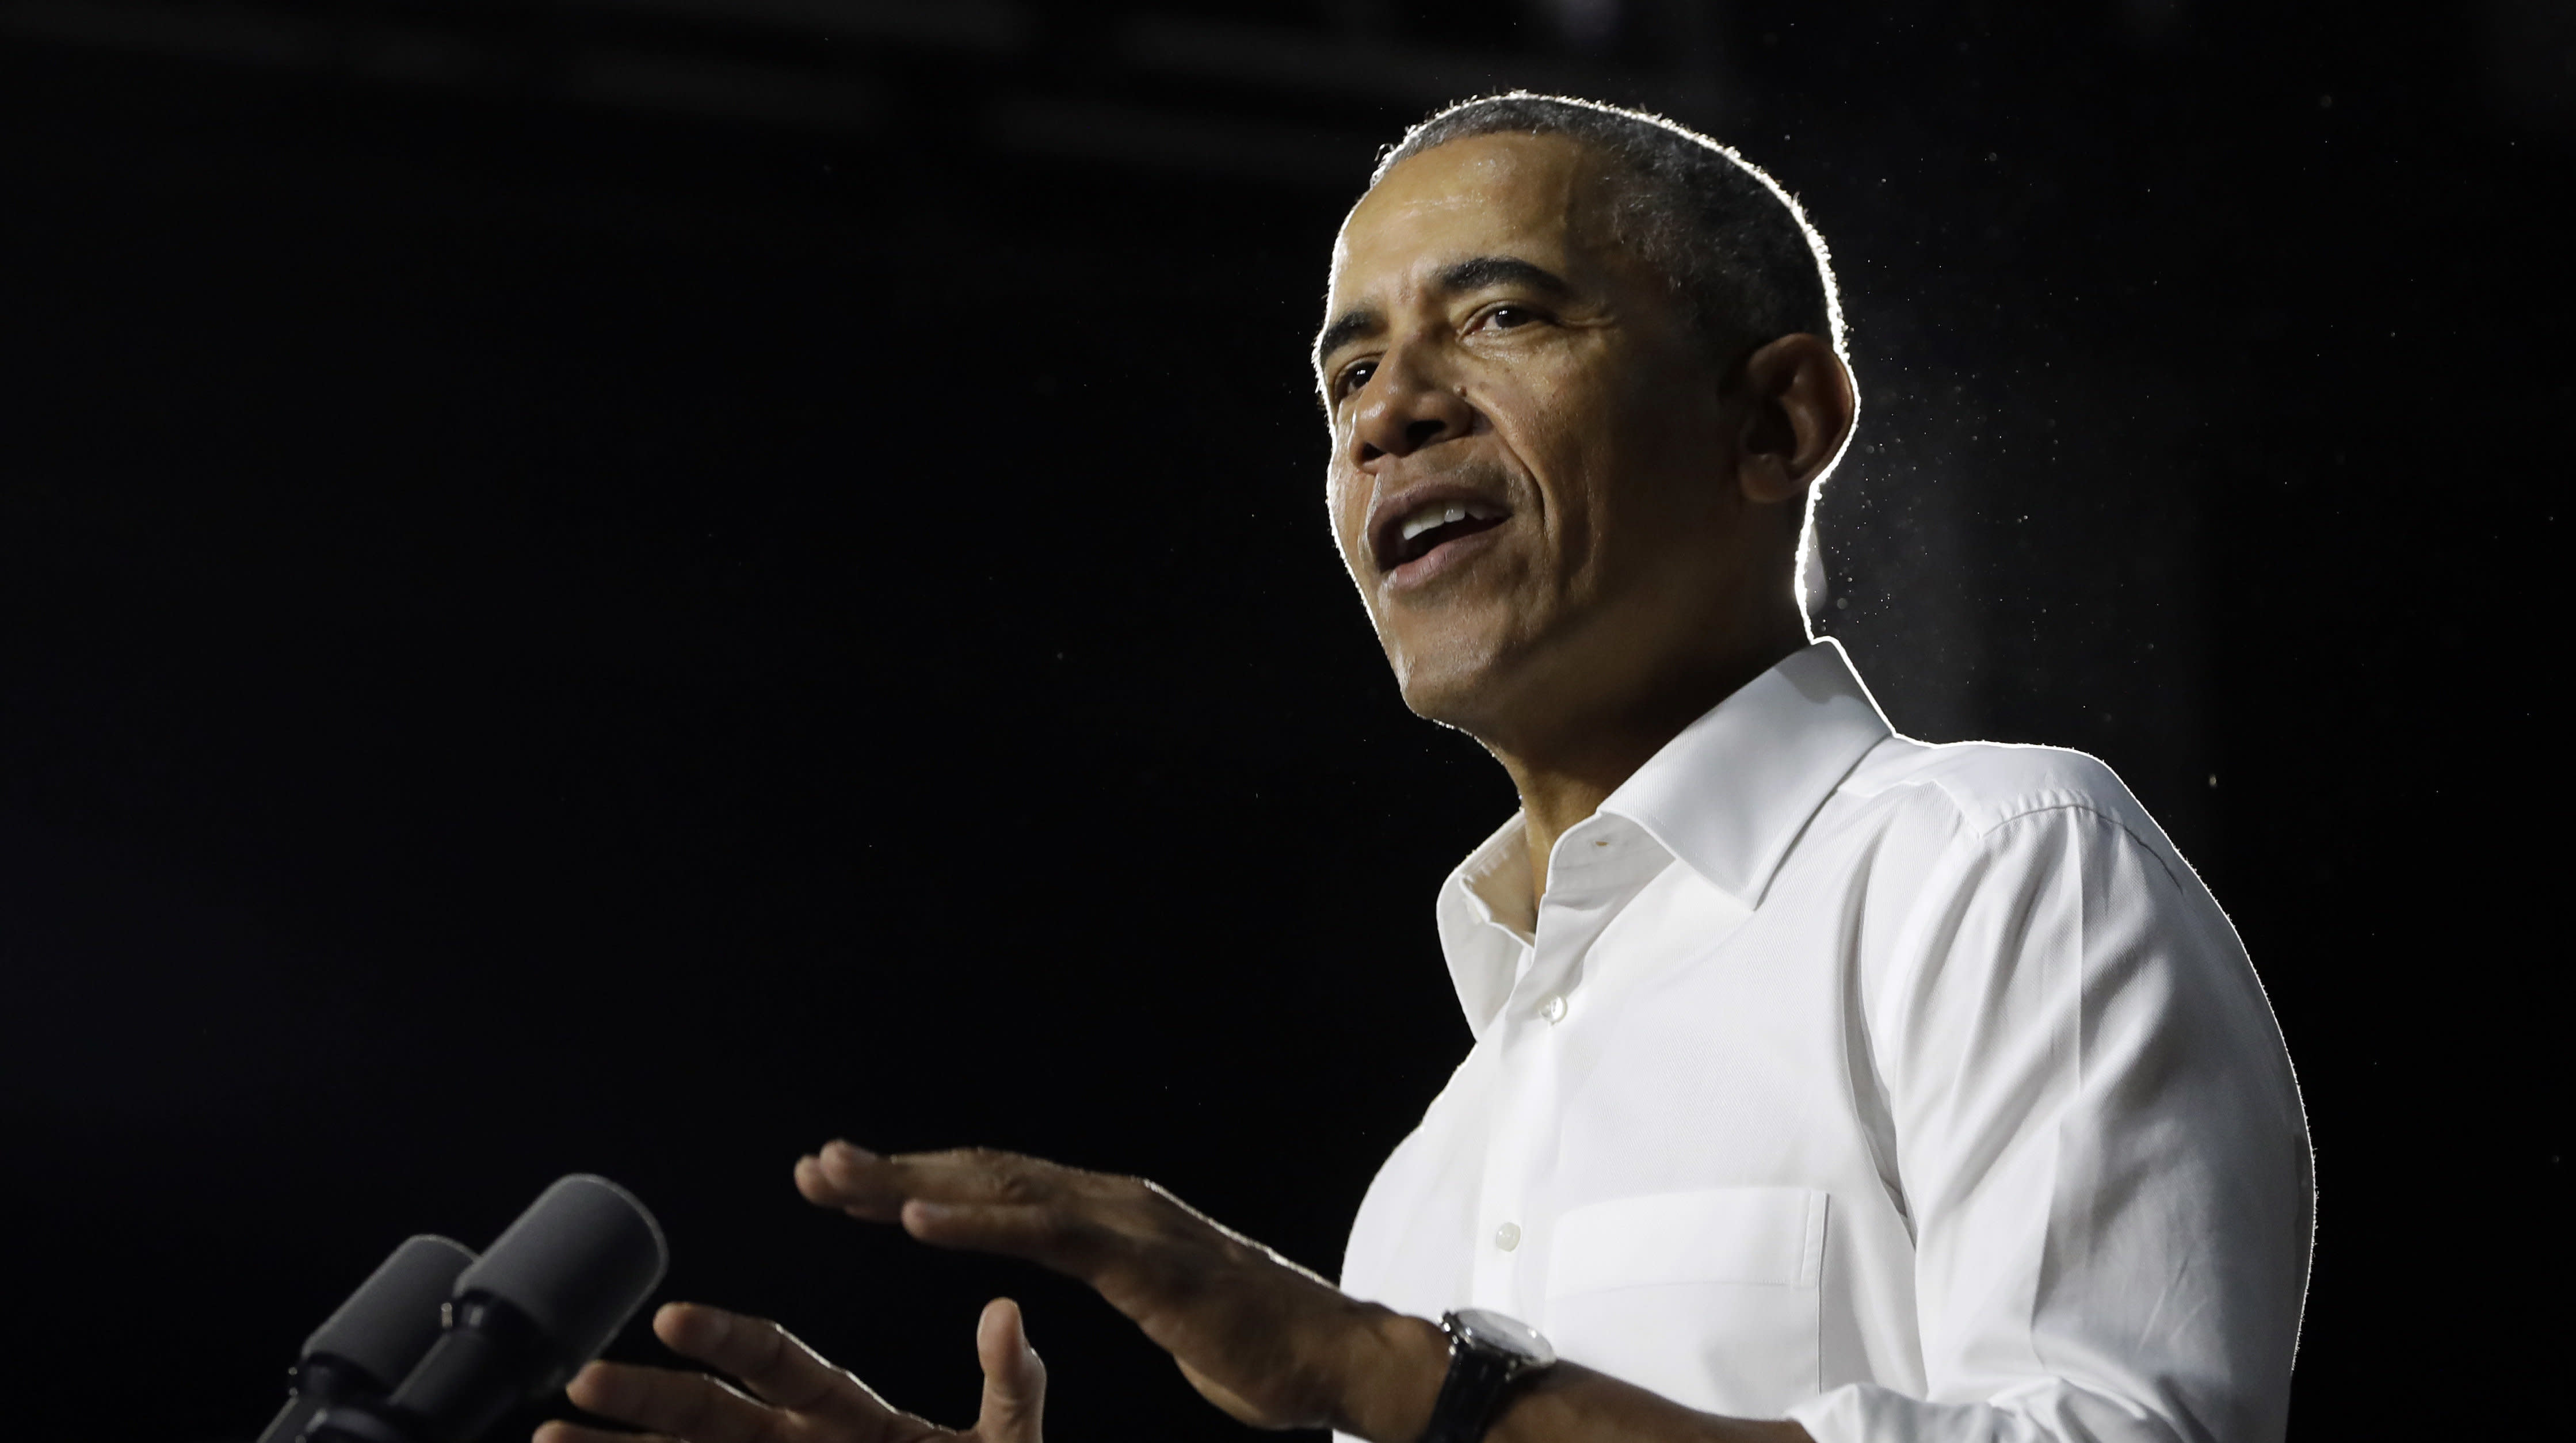 Obama Draws Excited Crowds Ordering Tacos In Miami While Campaigning In Florida